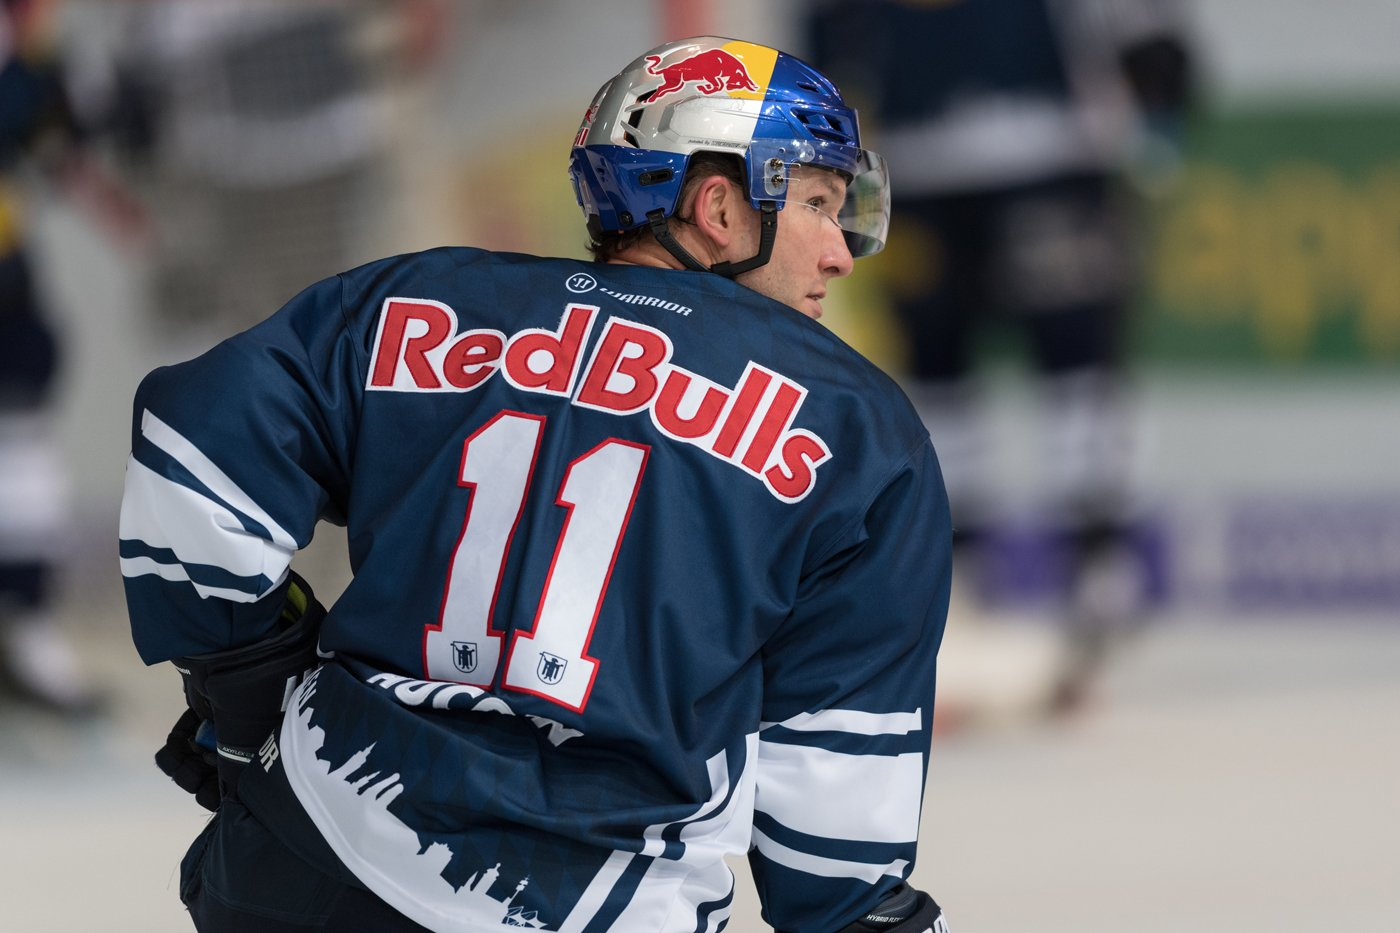 topscorer aucoin feiert 39 geburtstag ehc red bull m nchen. Black Bedroom Furniture Sets. Home Design Ideas